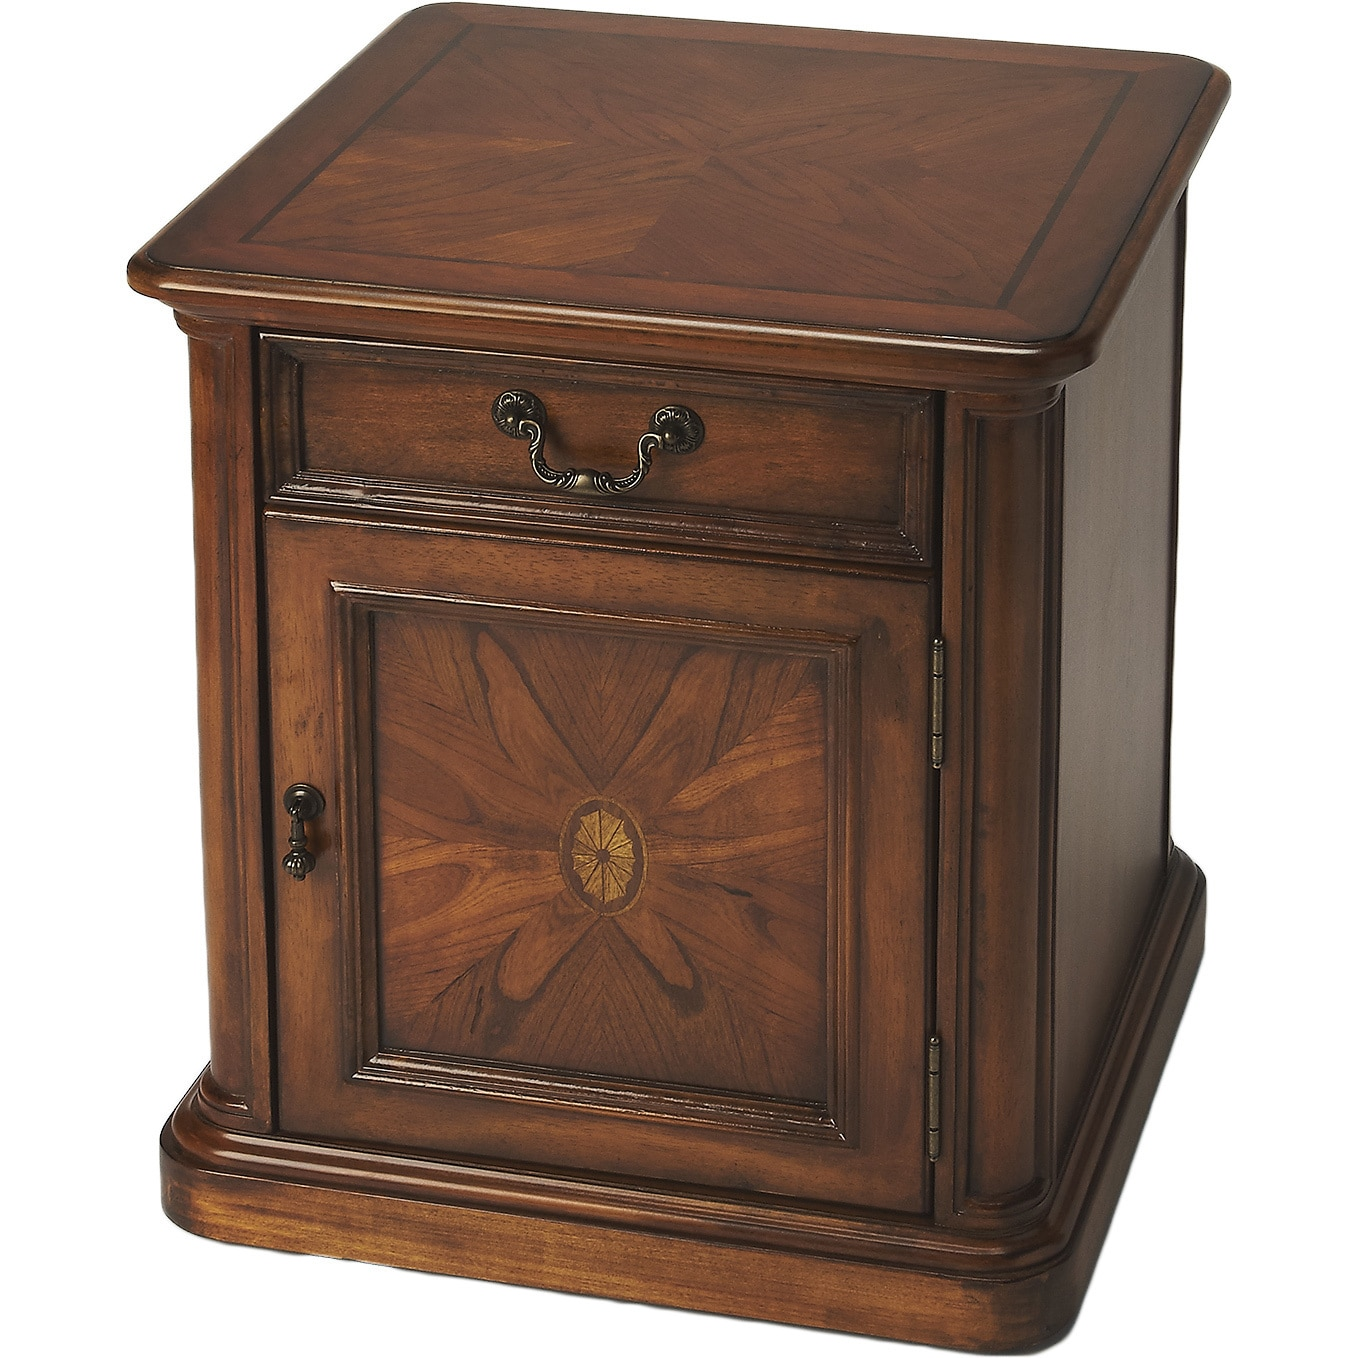 Overstock.com Side Table/Cabinet with Handcrafted Wood Inlay - Wood Burl at Sears.com